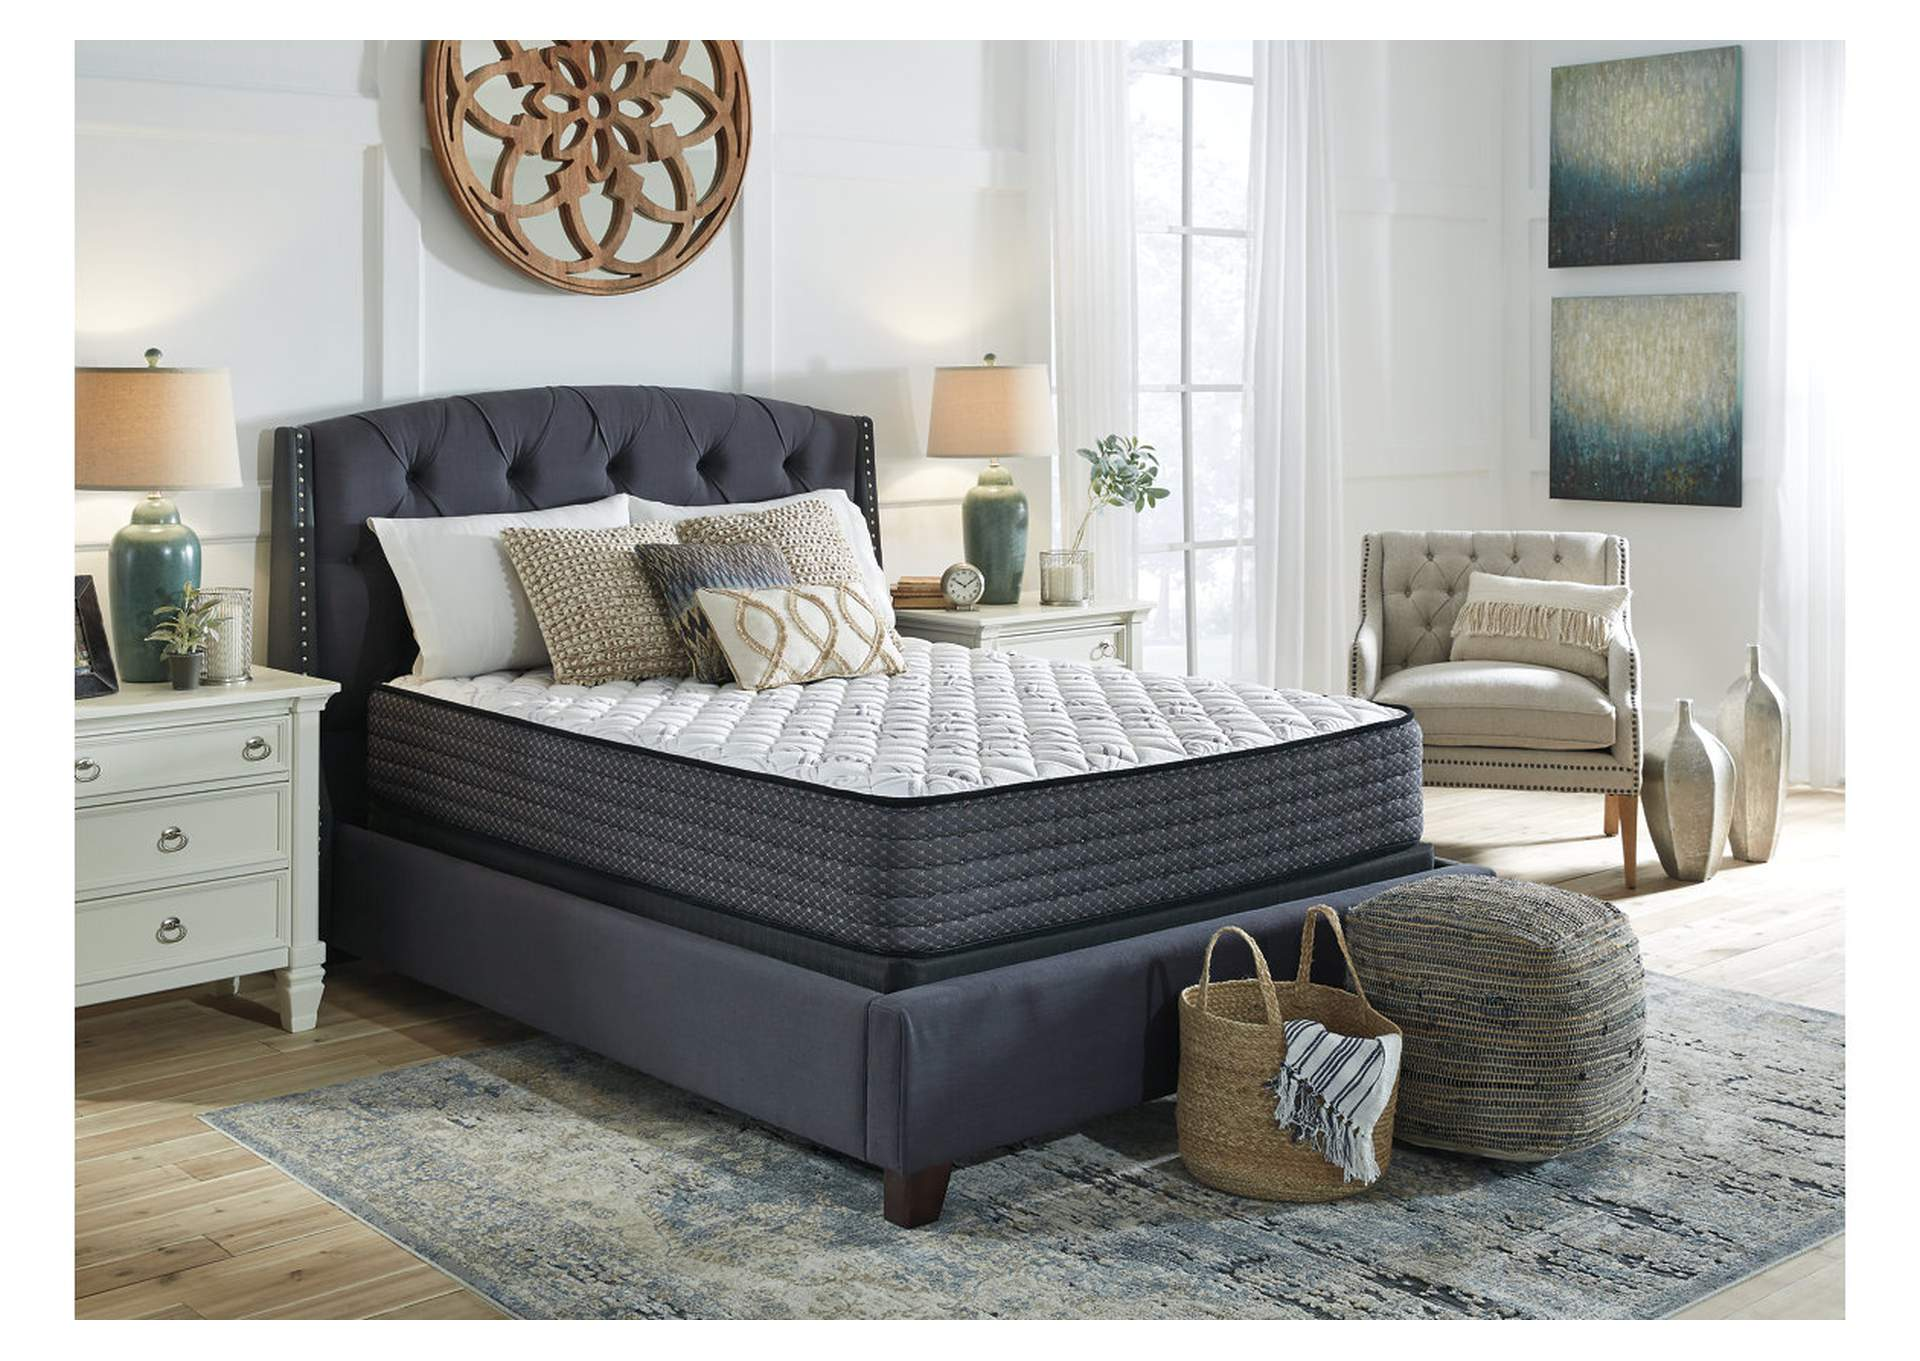 Limited Edition Firm Full Mattress w/Foundation,Sierra Sleep by Ashley